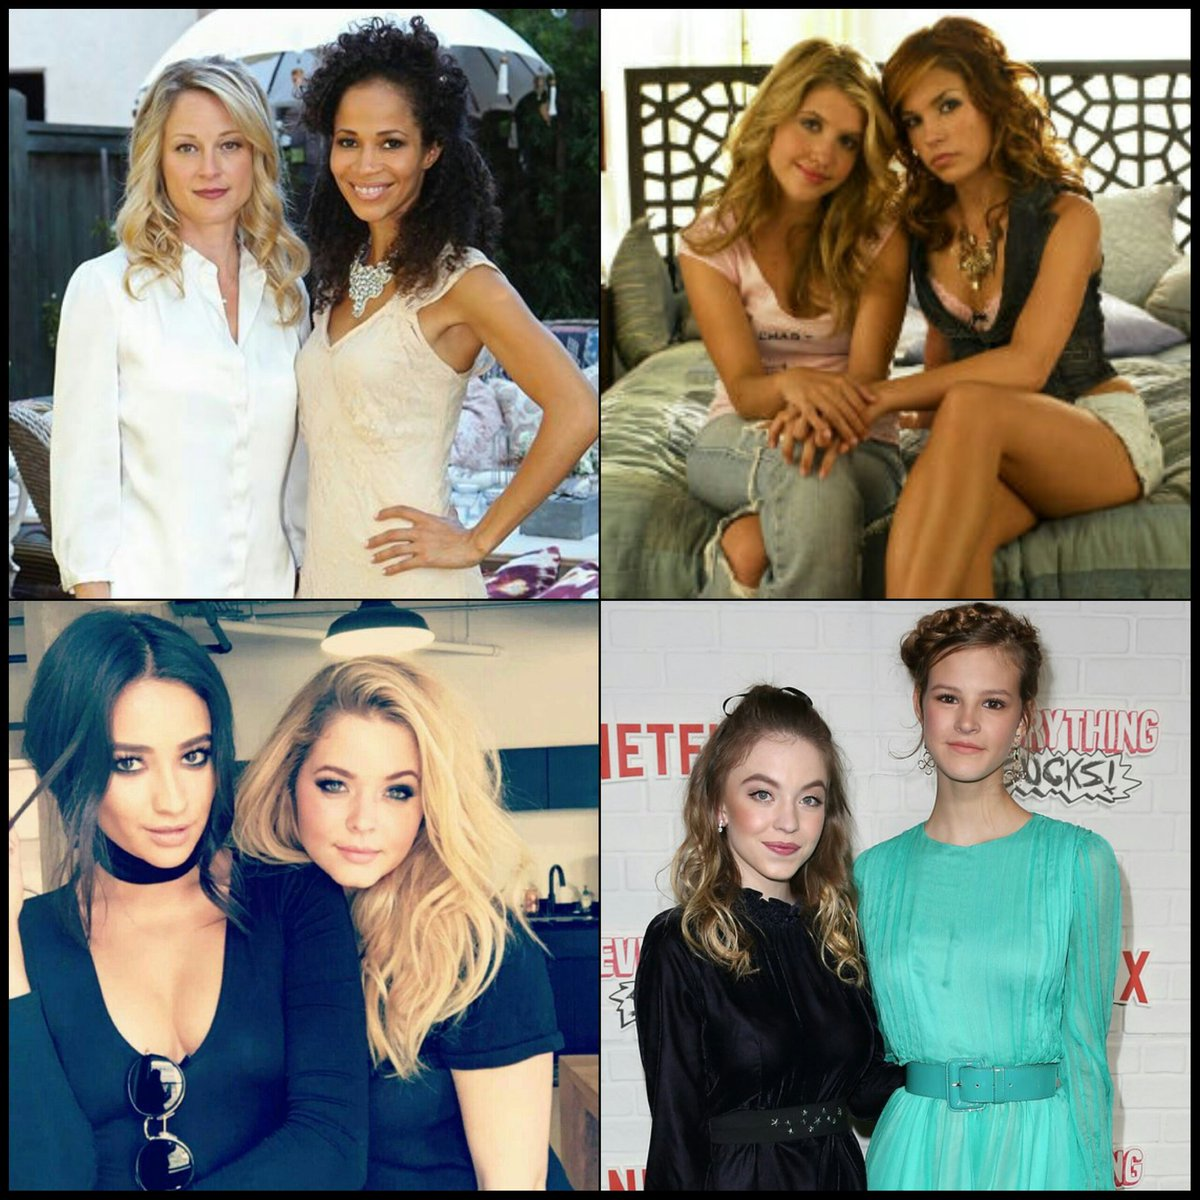 These are my top 4, and I can't believe you left out 2 of them! #Spashley #Kemaline #Emison #StefAndLena <br>http://pic.twitter.com/zYSZpFliUB